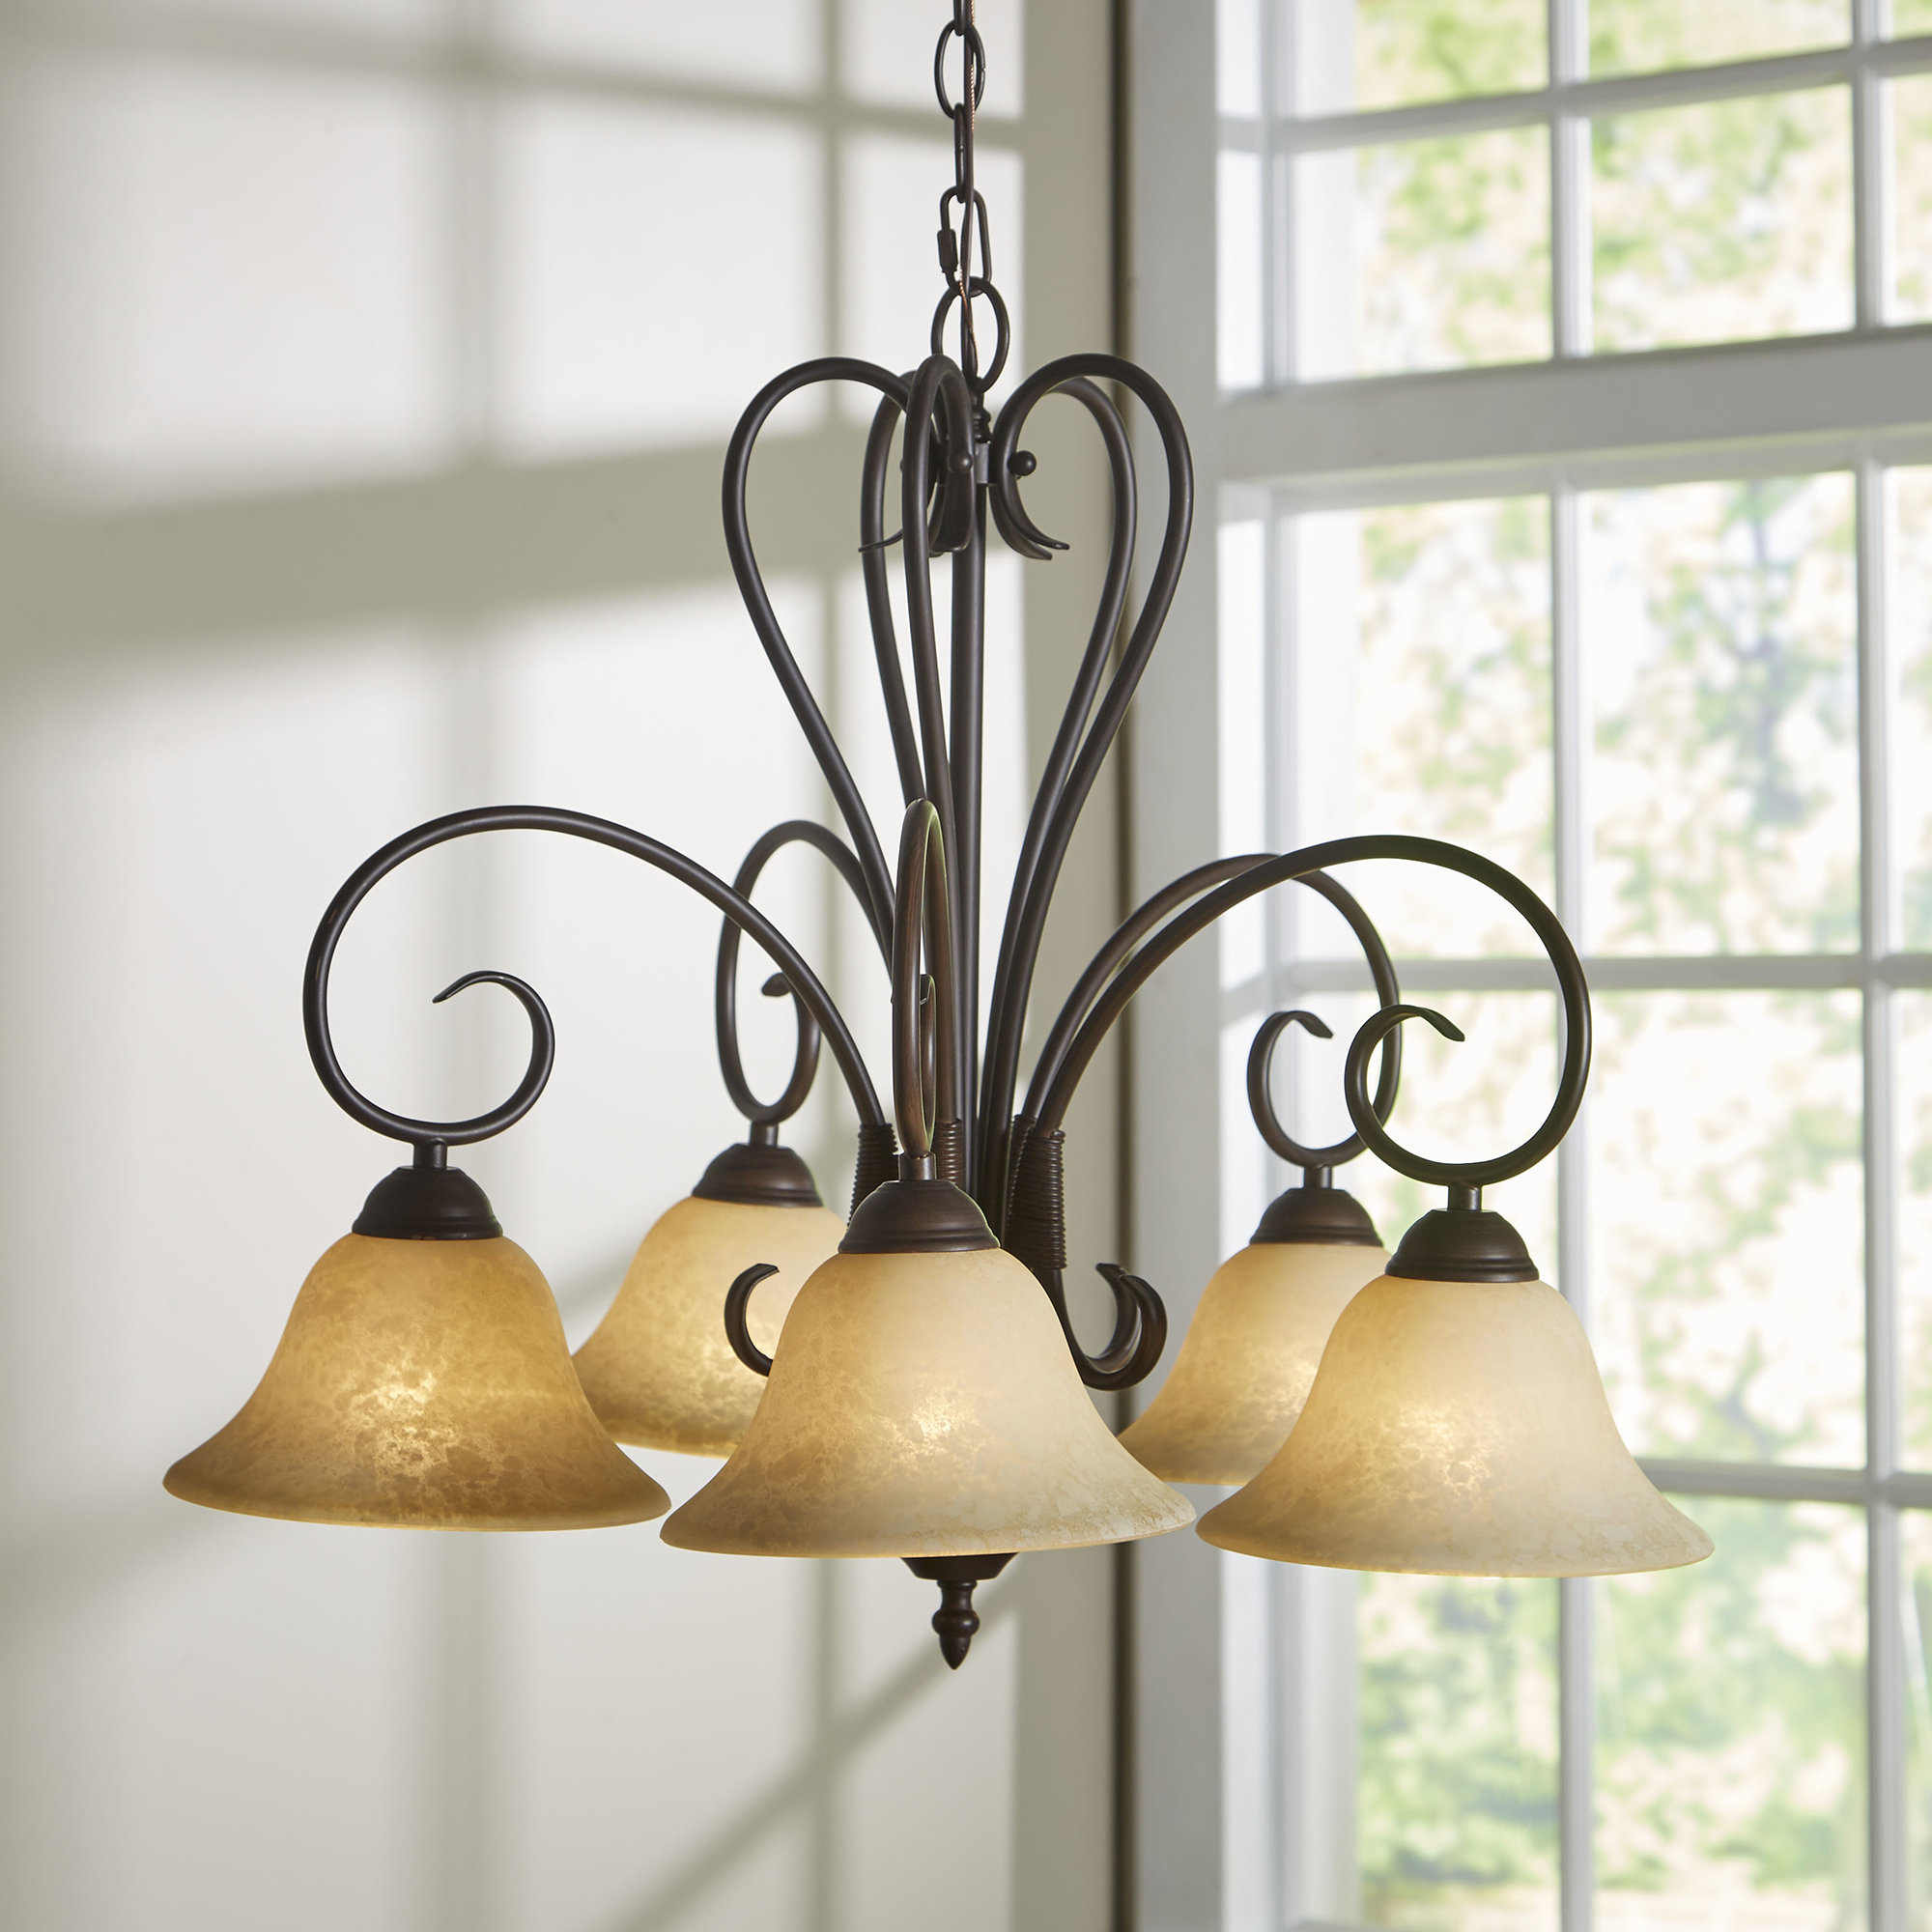 Widely Used Gaines 5 Light Shaded Chandelier With Hayden 5 Light Shaded Chandeliers (View 14 of 20)